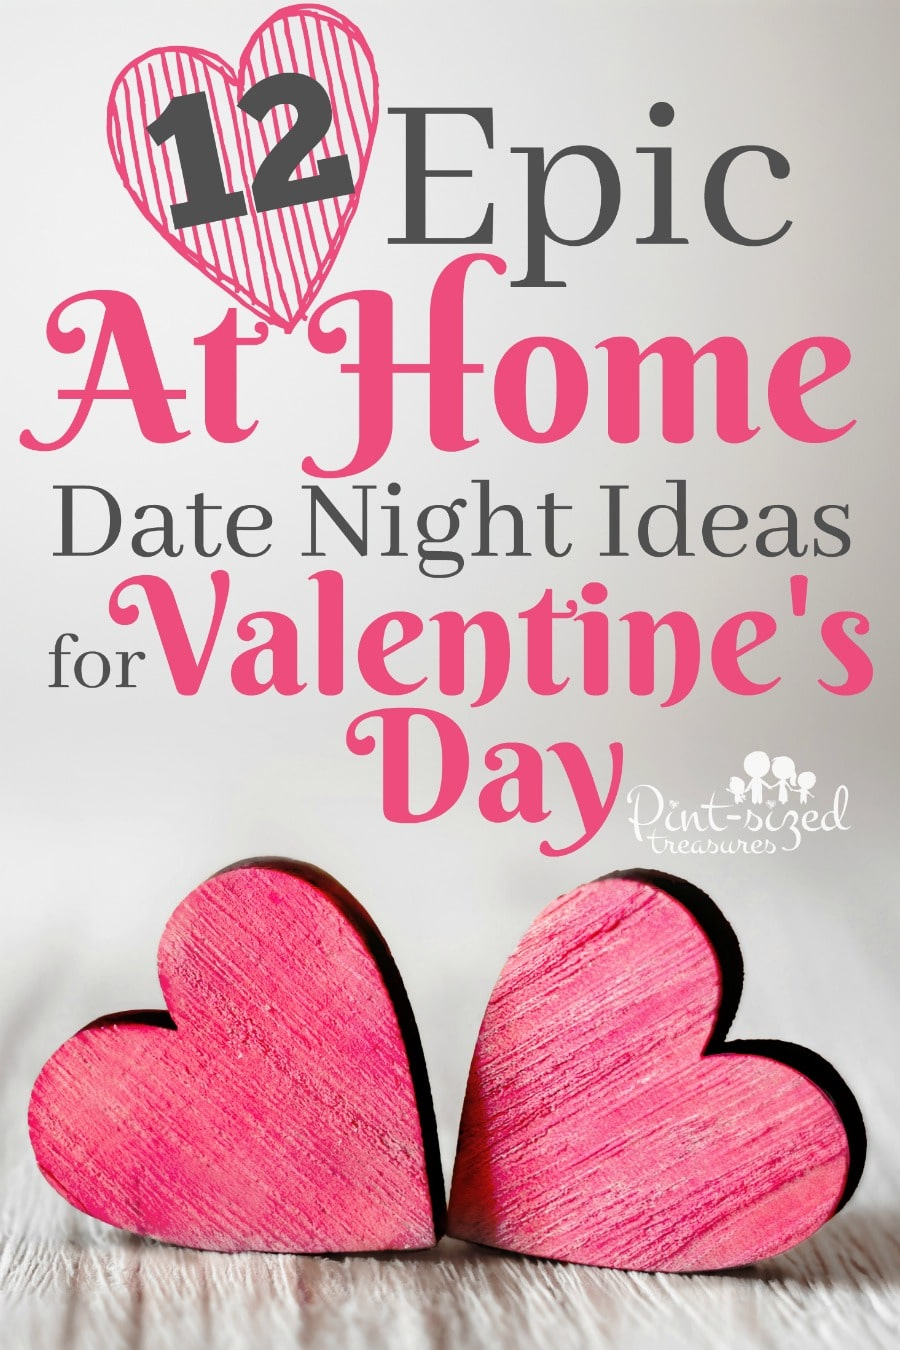 12 Epic At Home Date Night Ideas for Valentine's Day » Pint-sized ...